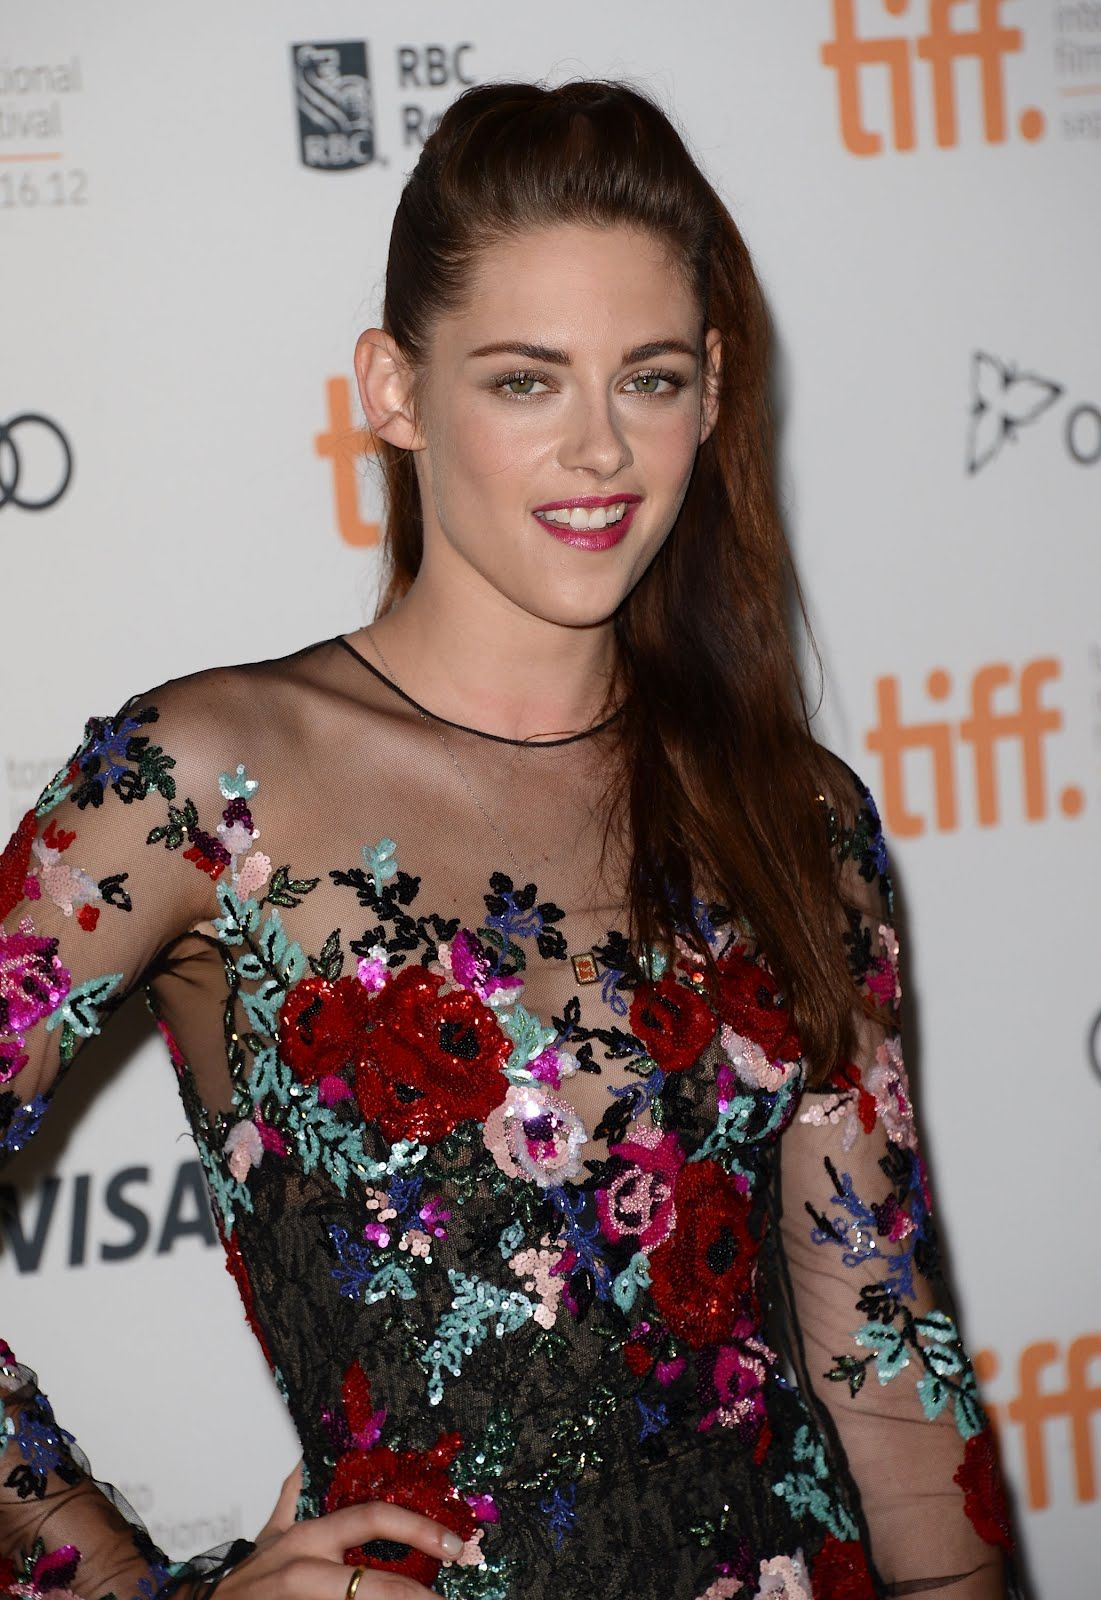 Robsten Dreams: Kristen at the premiere of On The Road at Toronto Film Festival